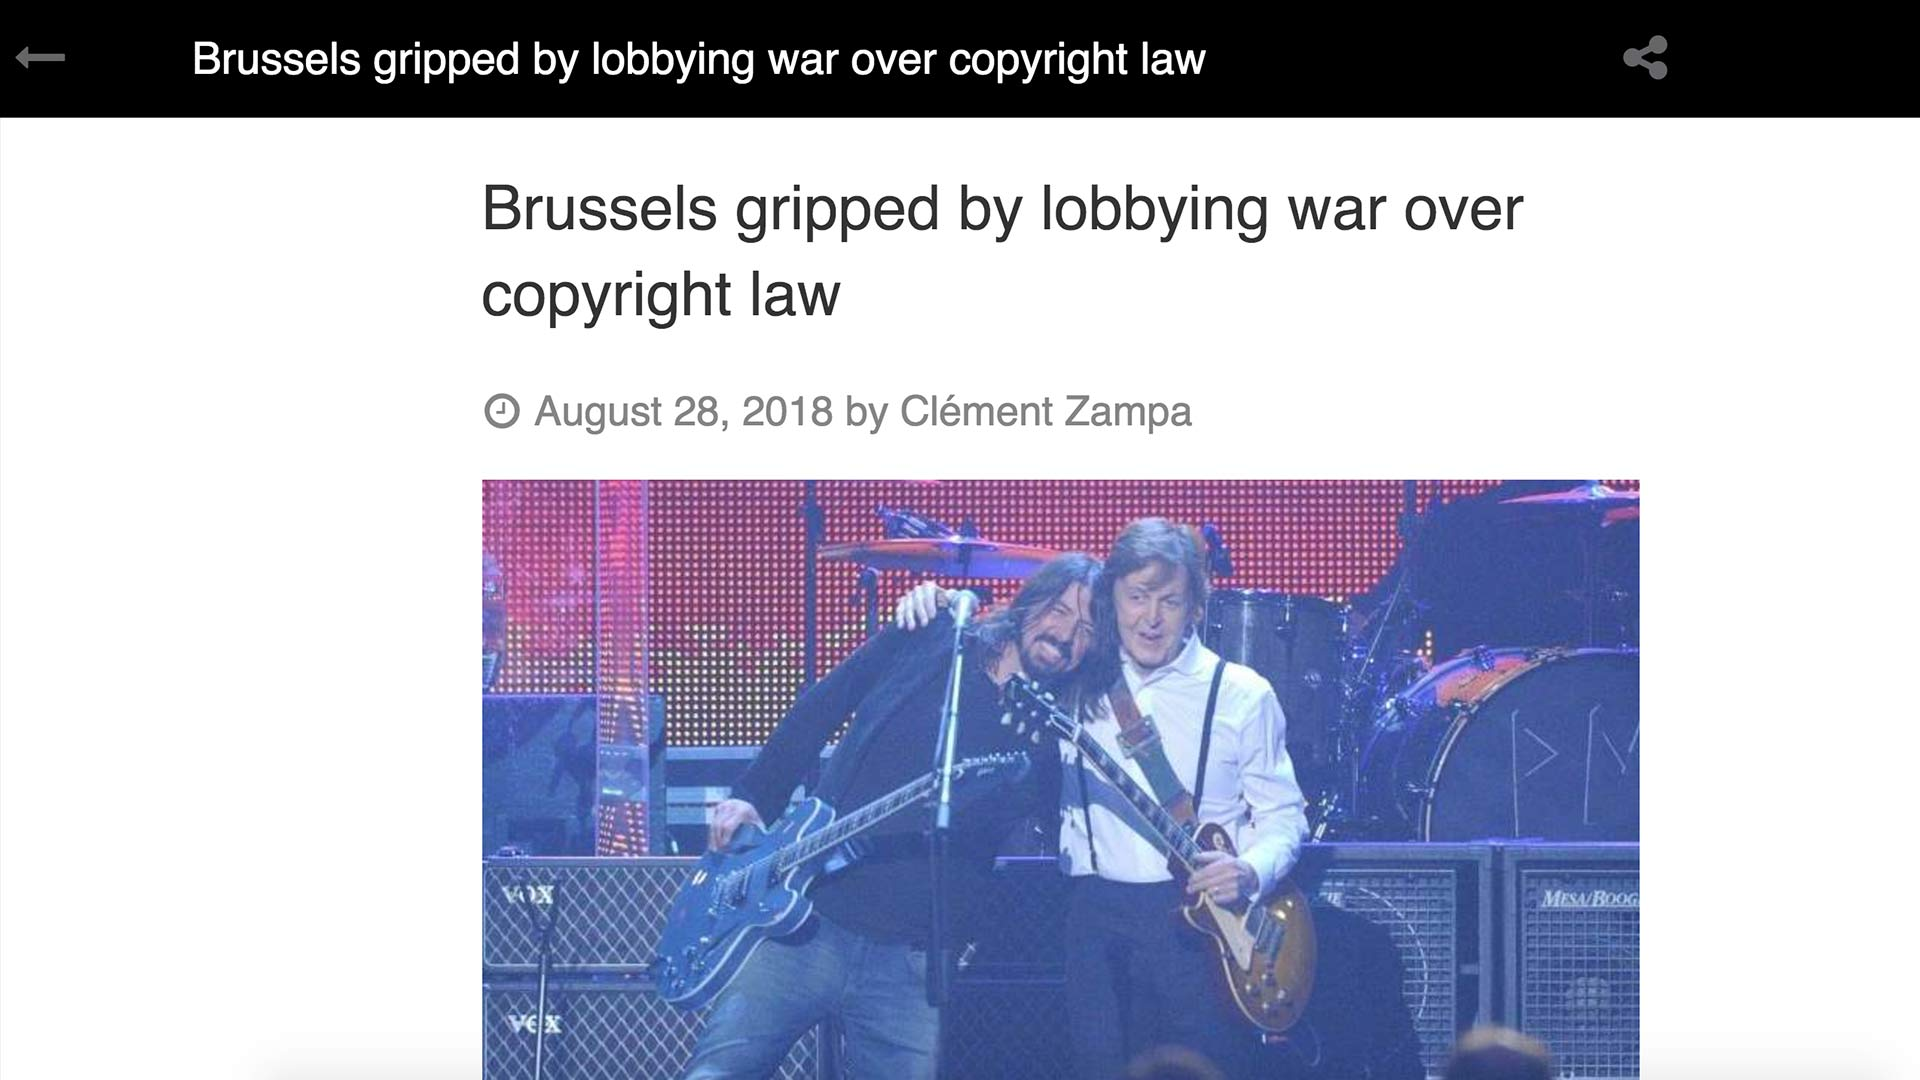 Fairness Rocks News Brussels gripped by lobbying war over copyright law